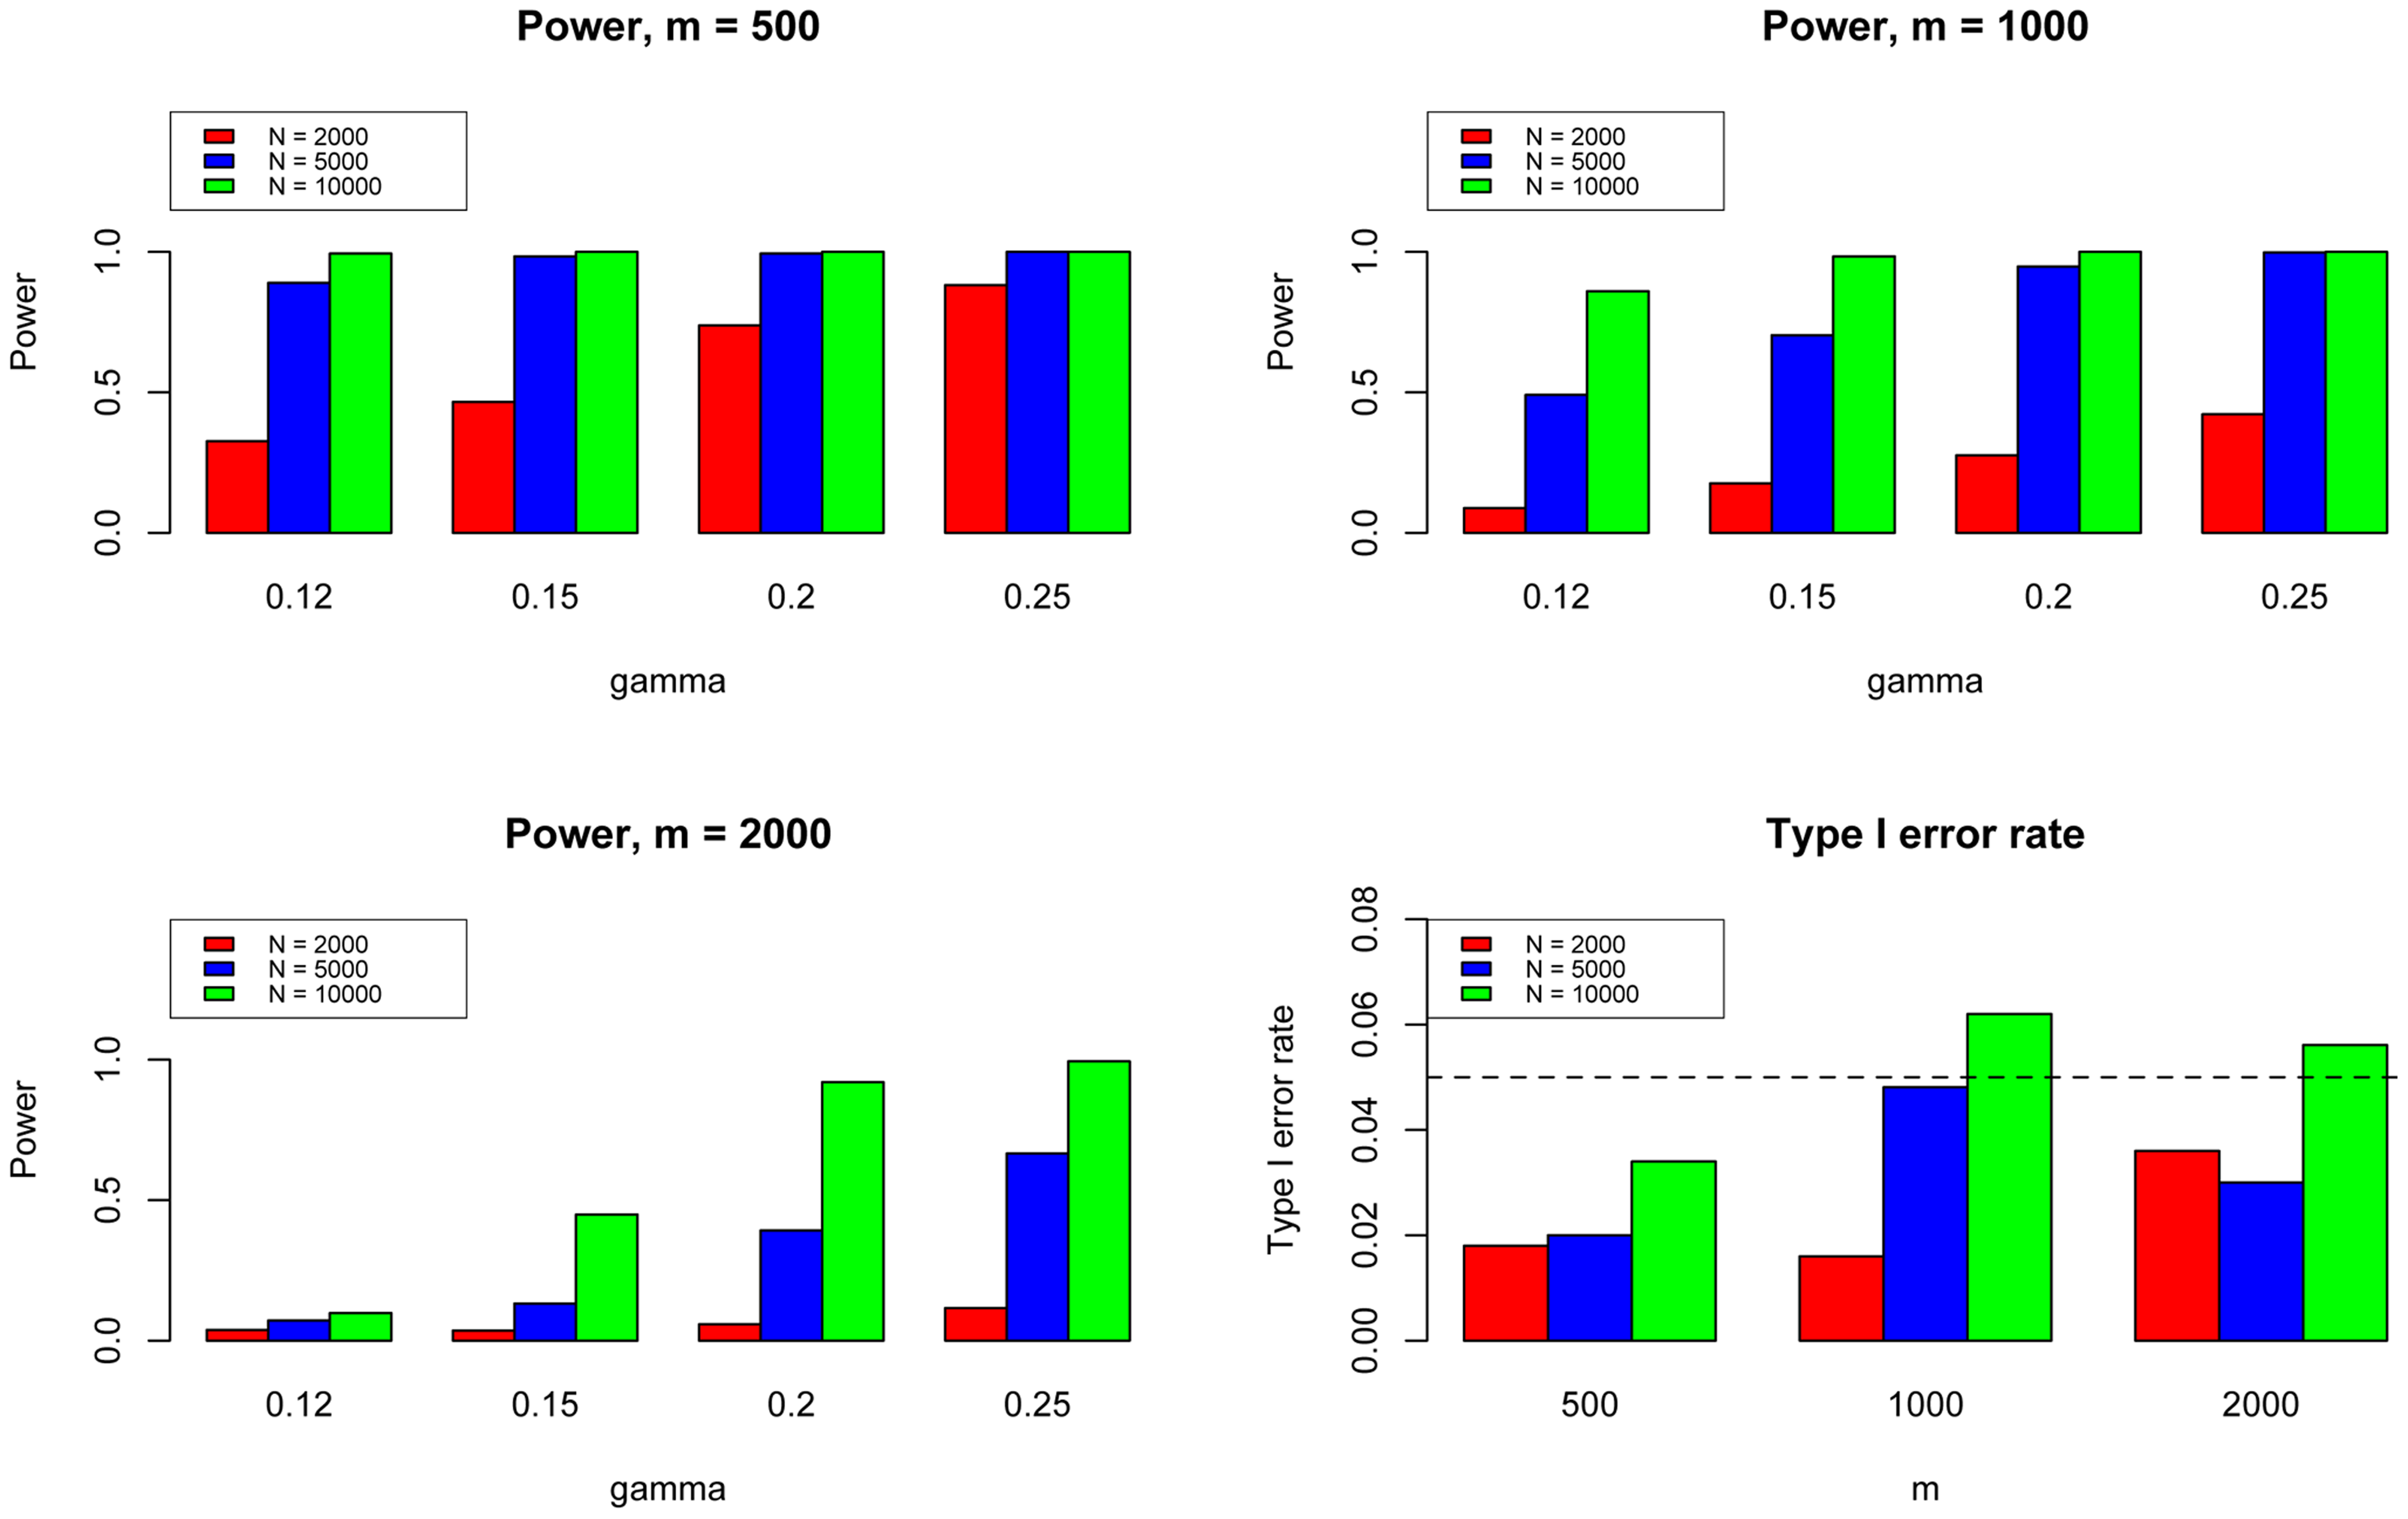 The type I error rate and power of the pleiotropy test. Here we varied  to evaluate the power for sample size =500 (Upper Left panel), 1000 (Upper Right panel), and 2000 (Lower Left panel), respectively.